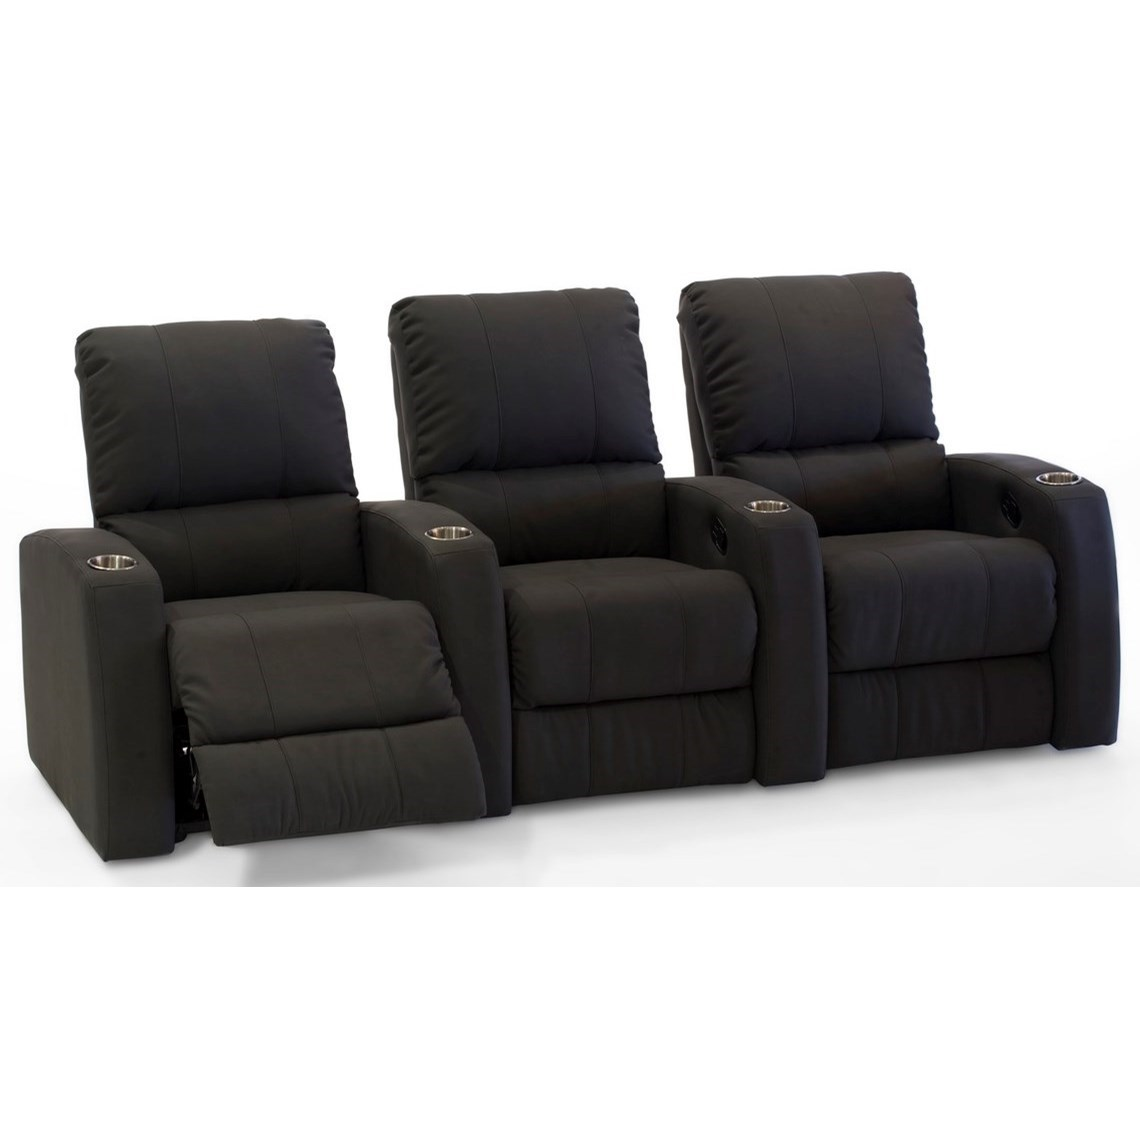 3-Seat Reclining Theater Seating